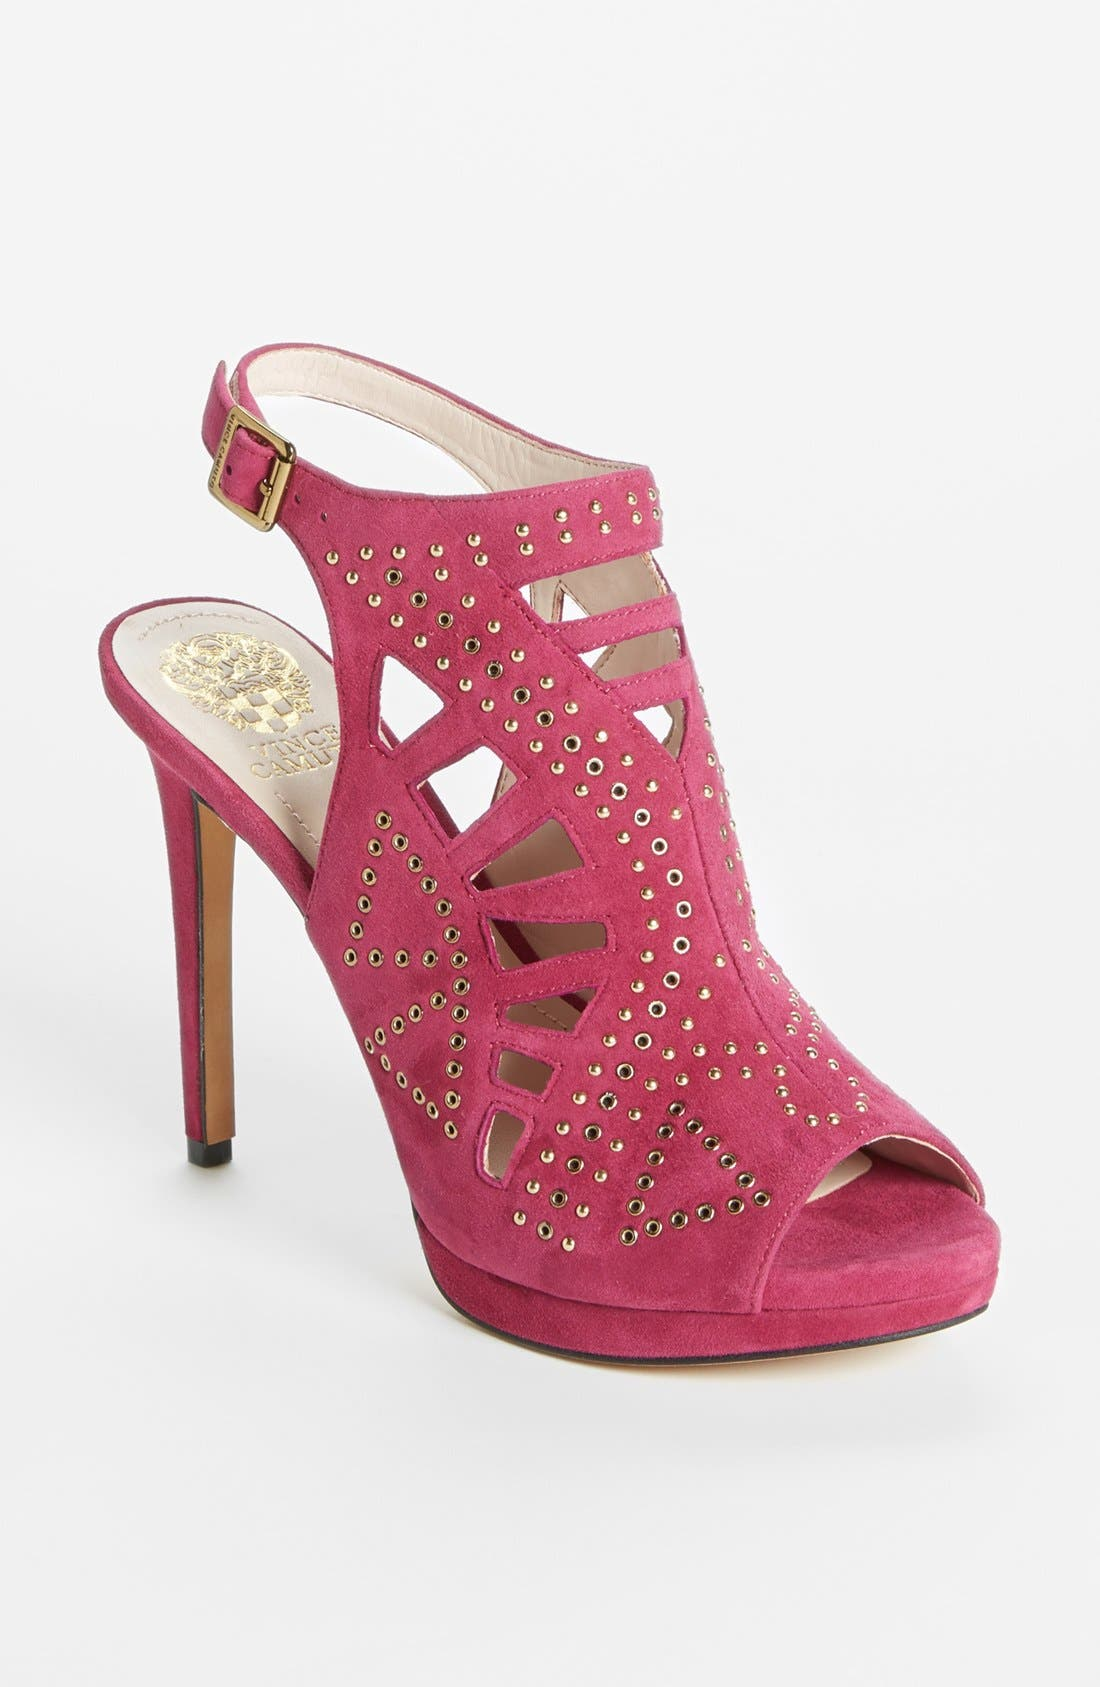 Main Image - Vince Camuto 'Cassi' Sandal